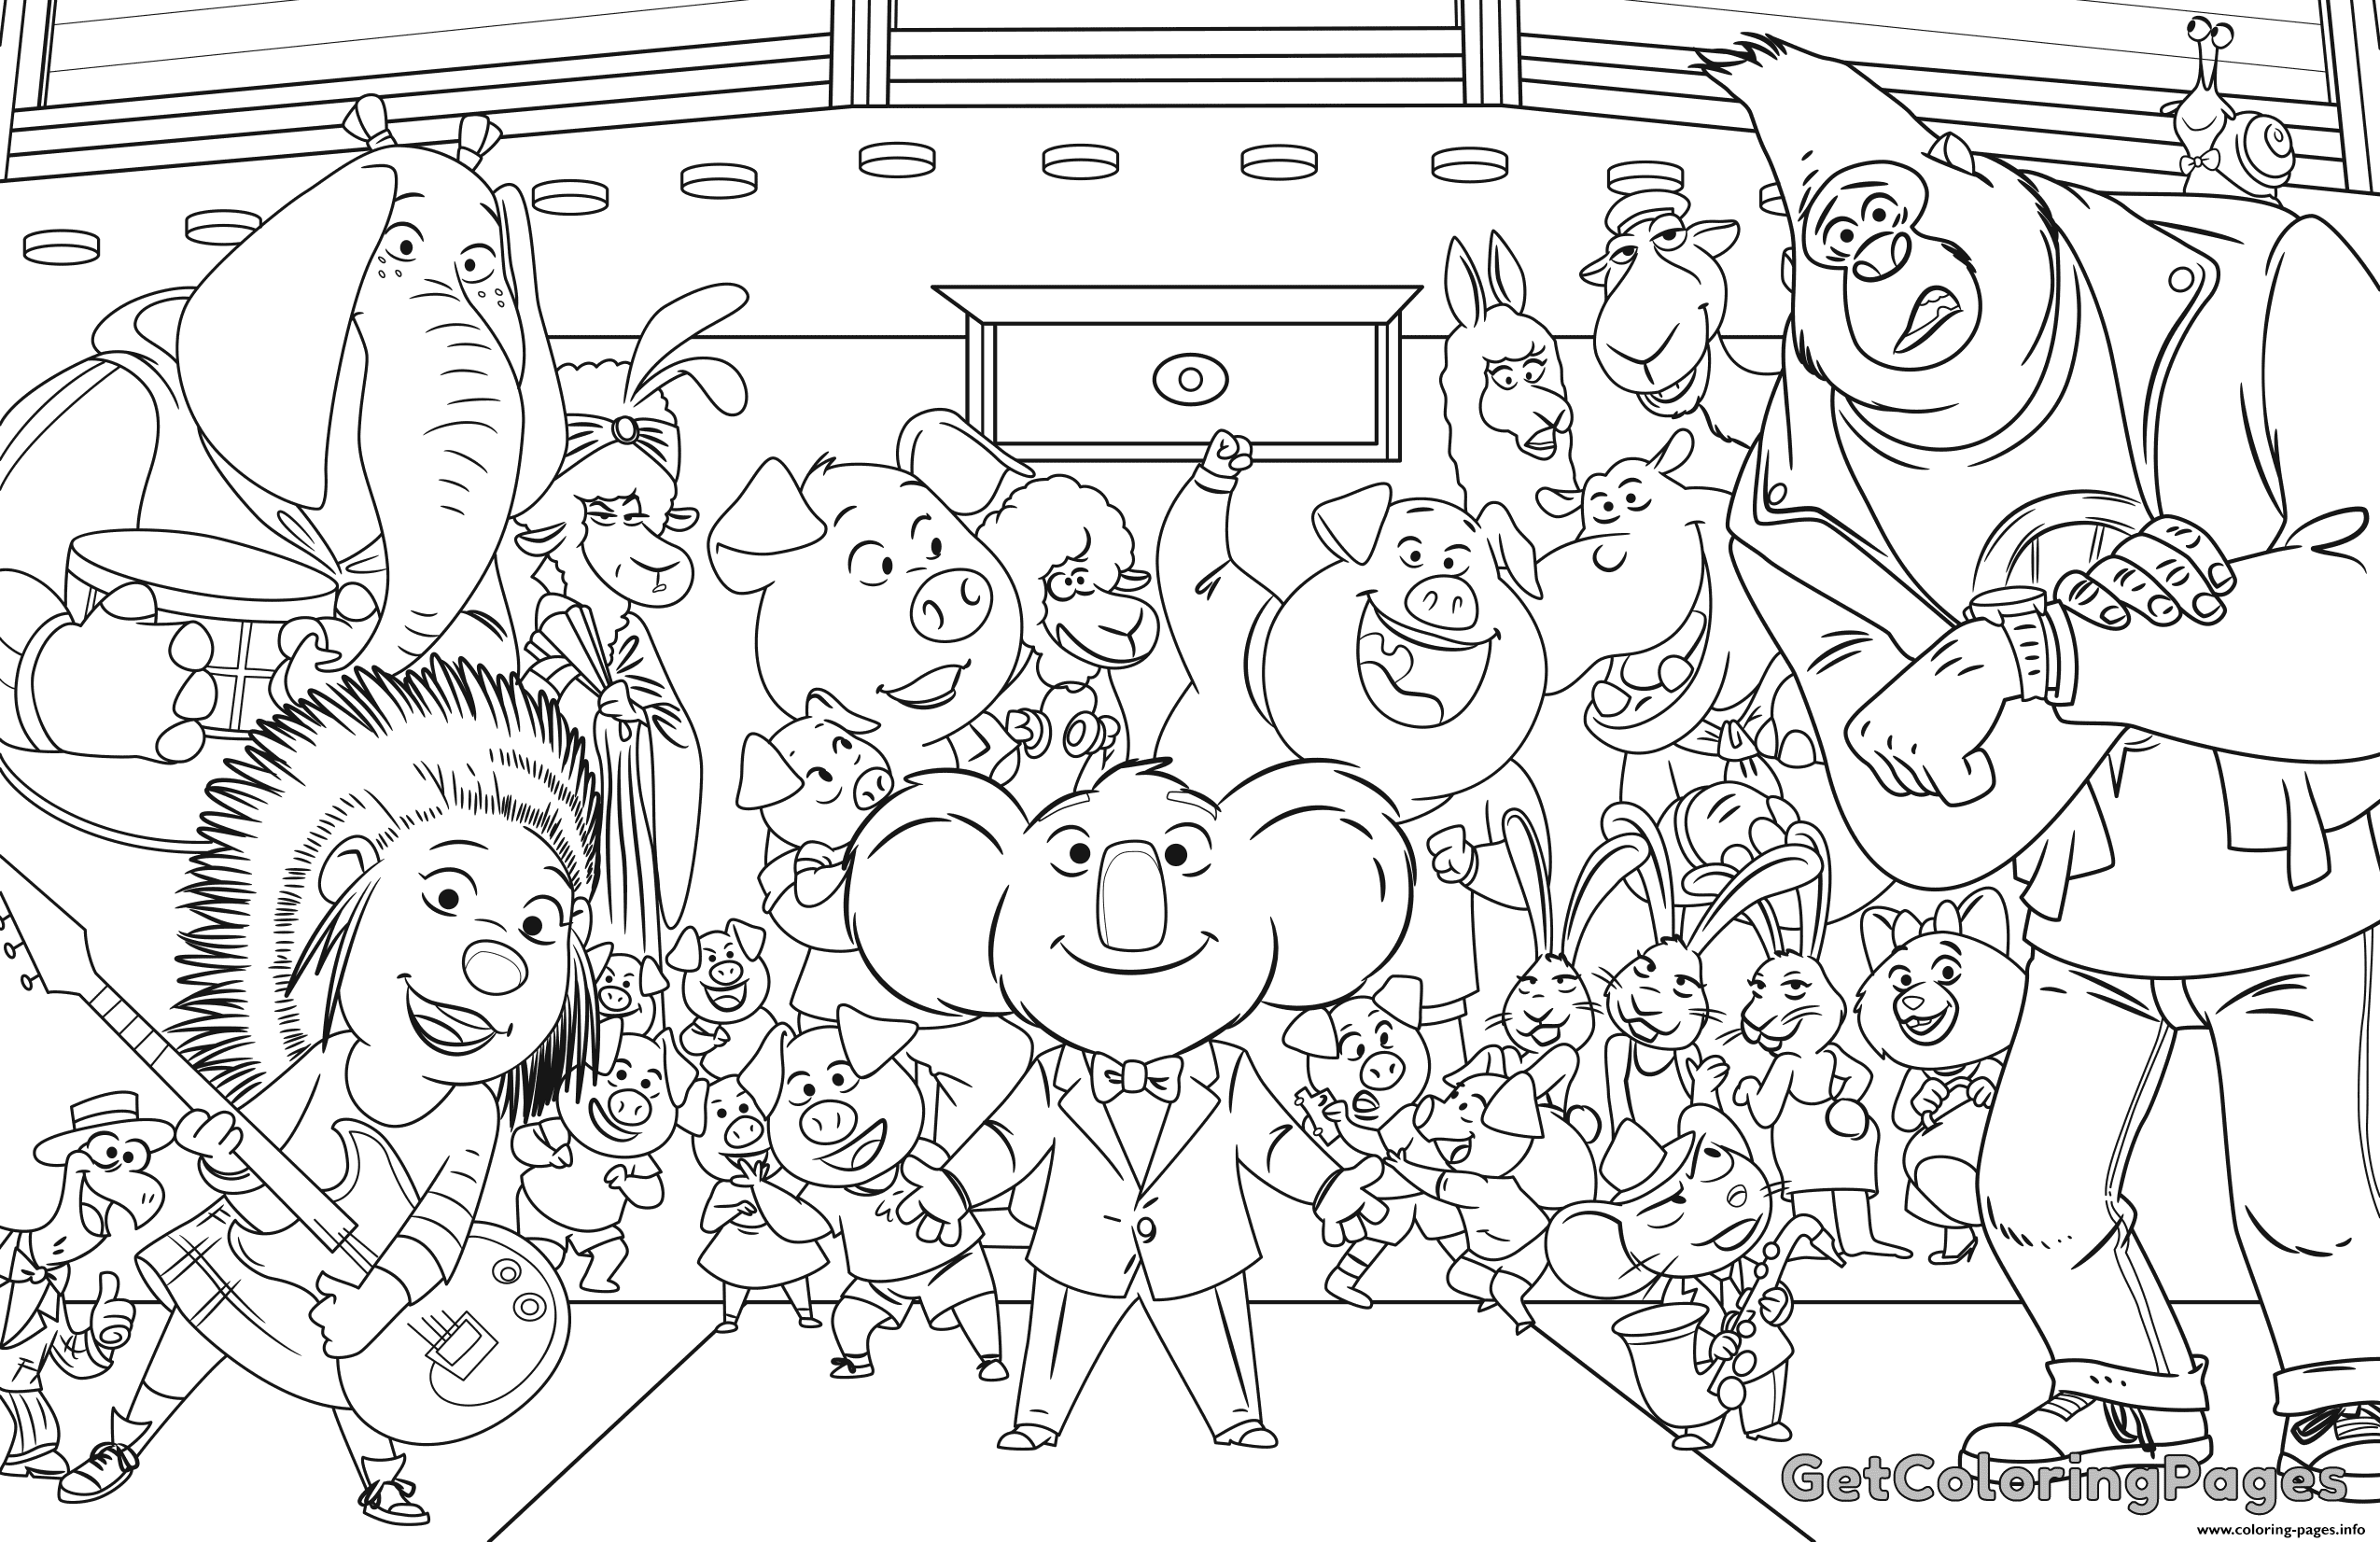 Print Sing Colouring Page Coloring Pages Lego Movie Coloring Pages Minion Coloring Pages Cartoon Coloring Pages